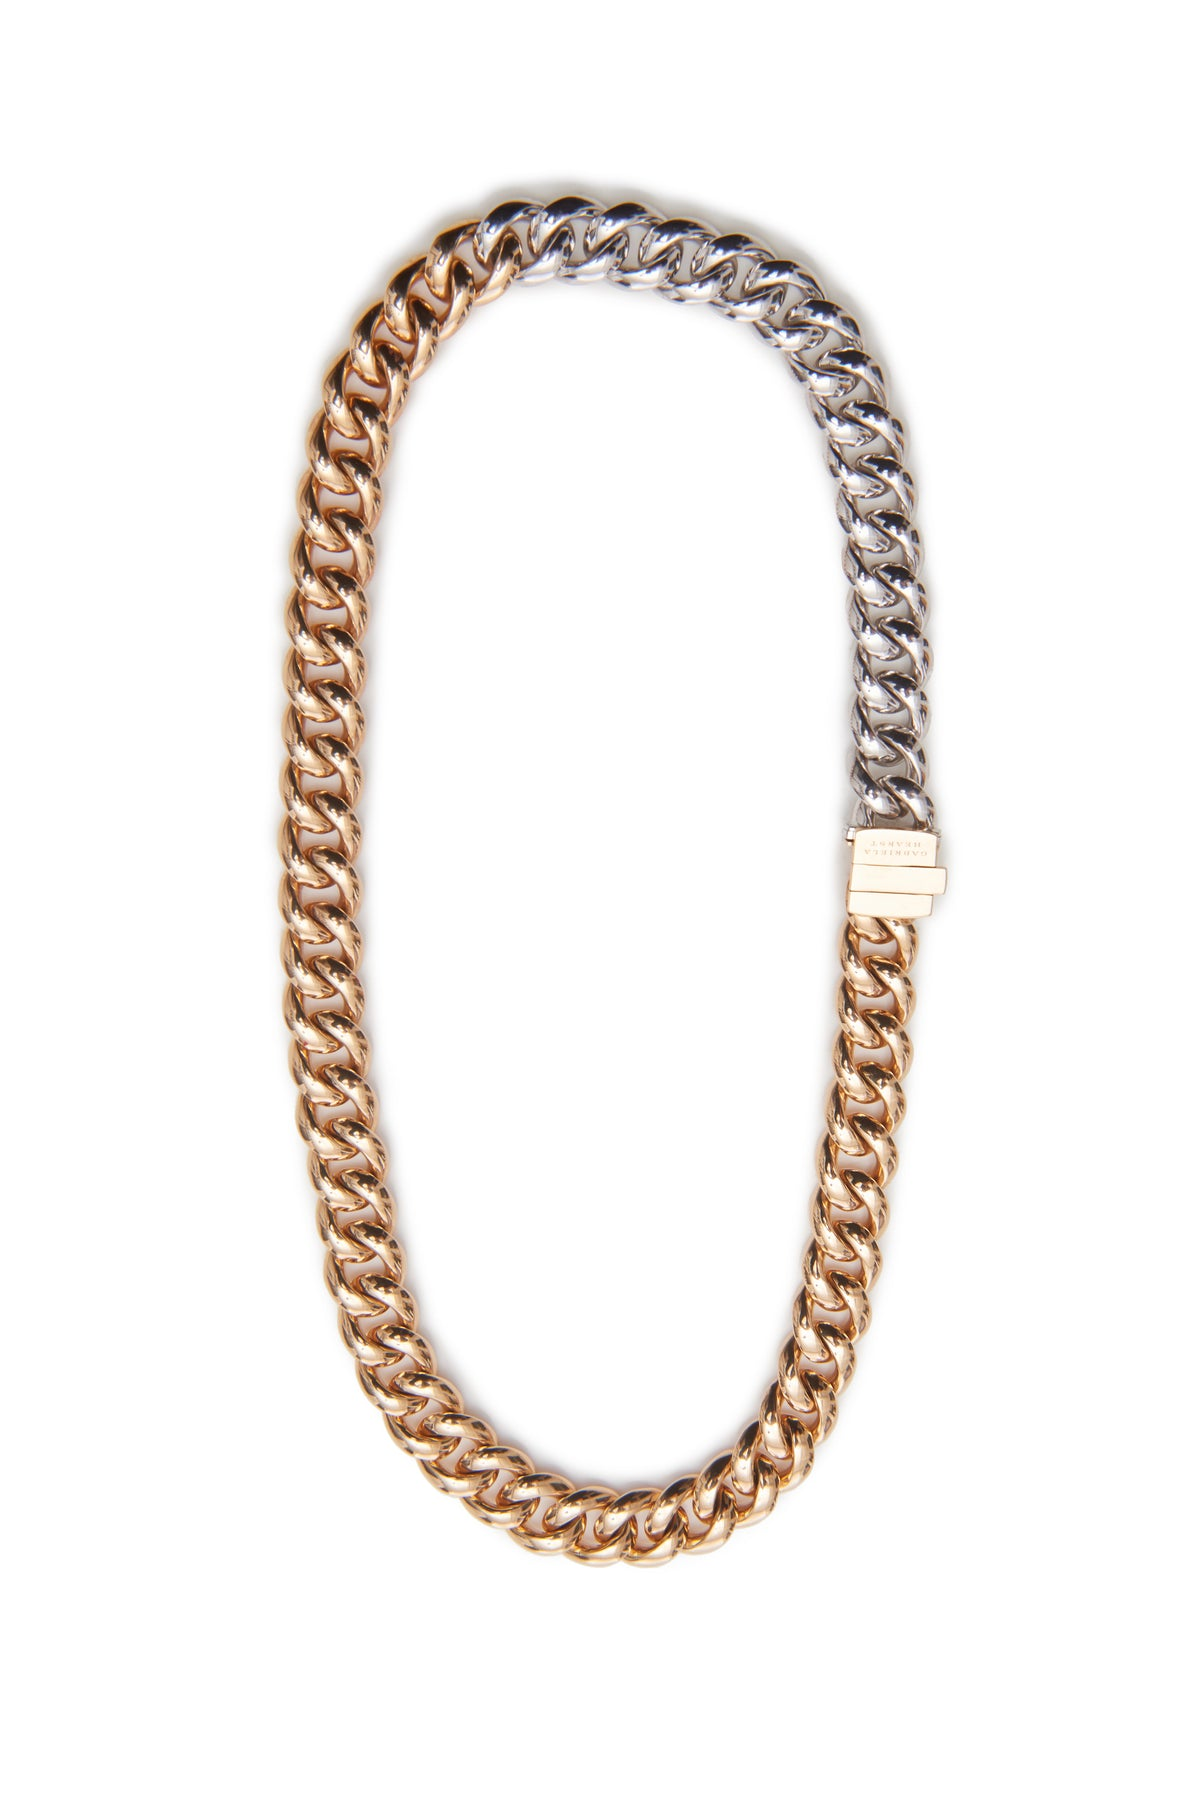 18k Solid White and Rose Gold Chain Necklace